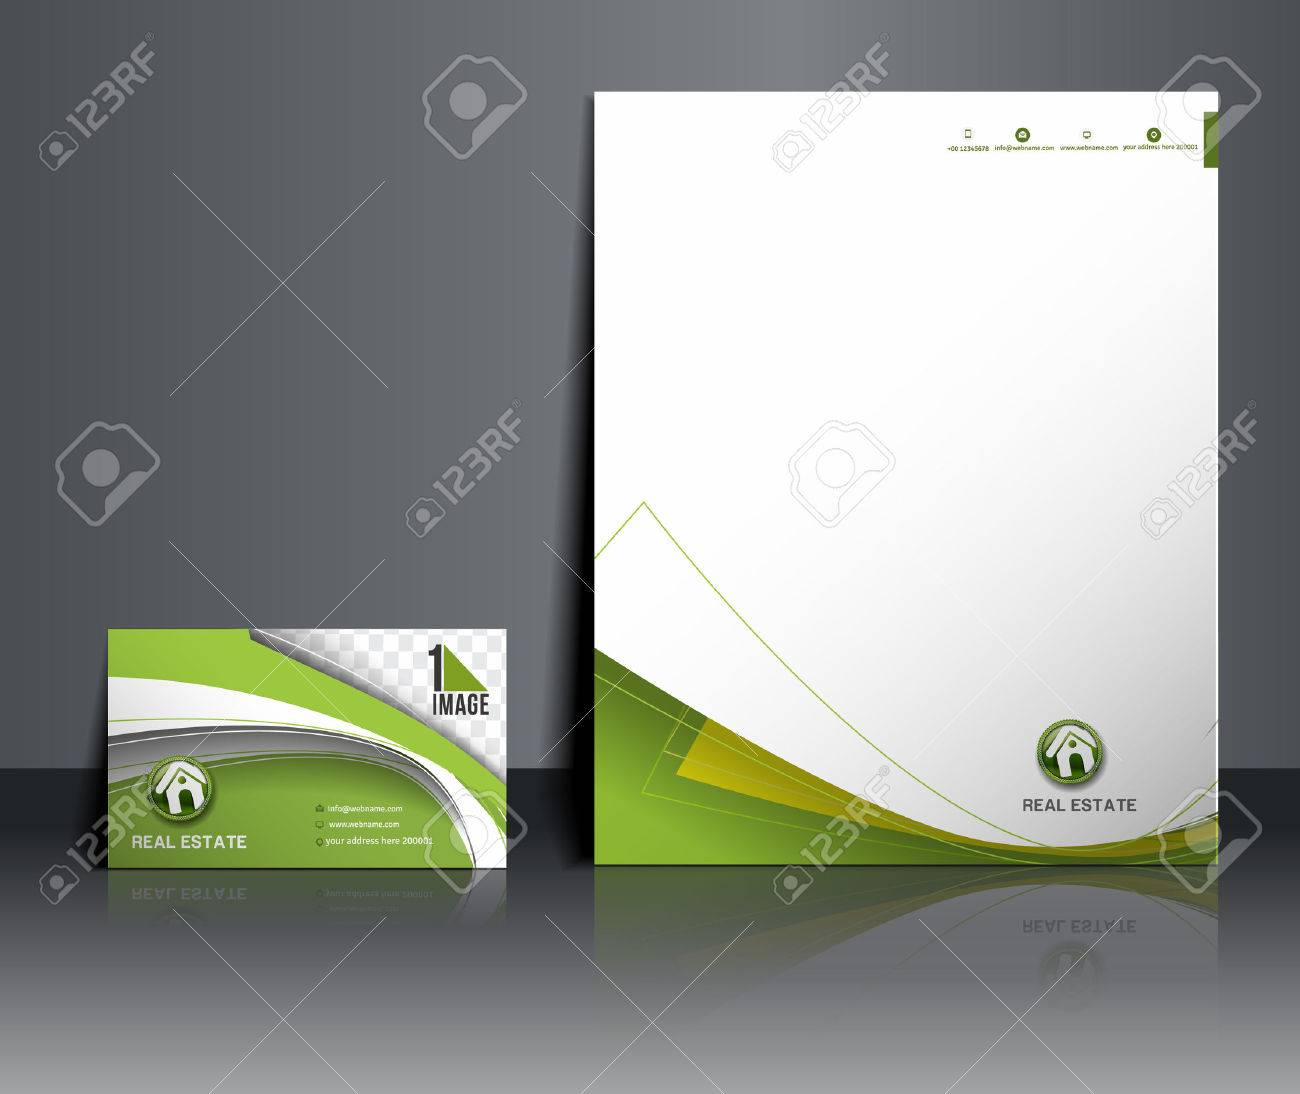 Real Estate Agent Corporate Identity Template Stock Vector - 38118412